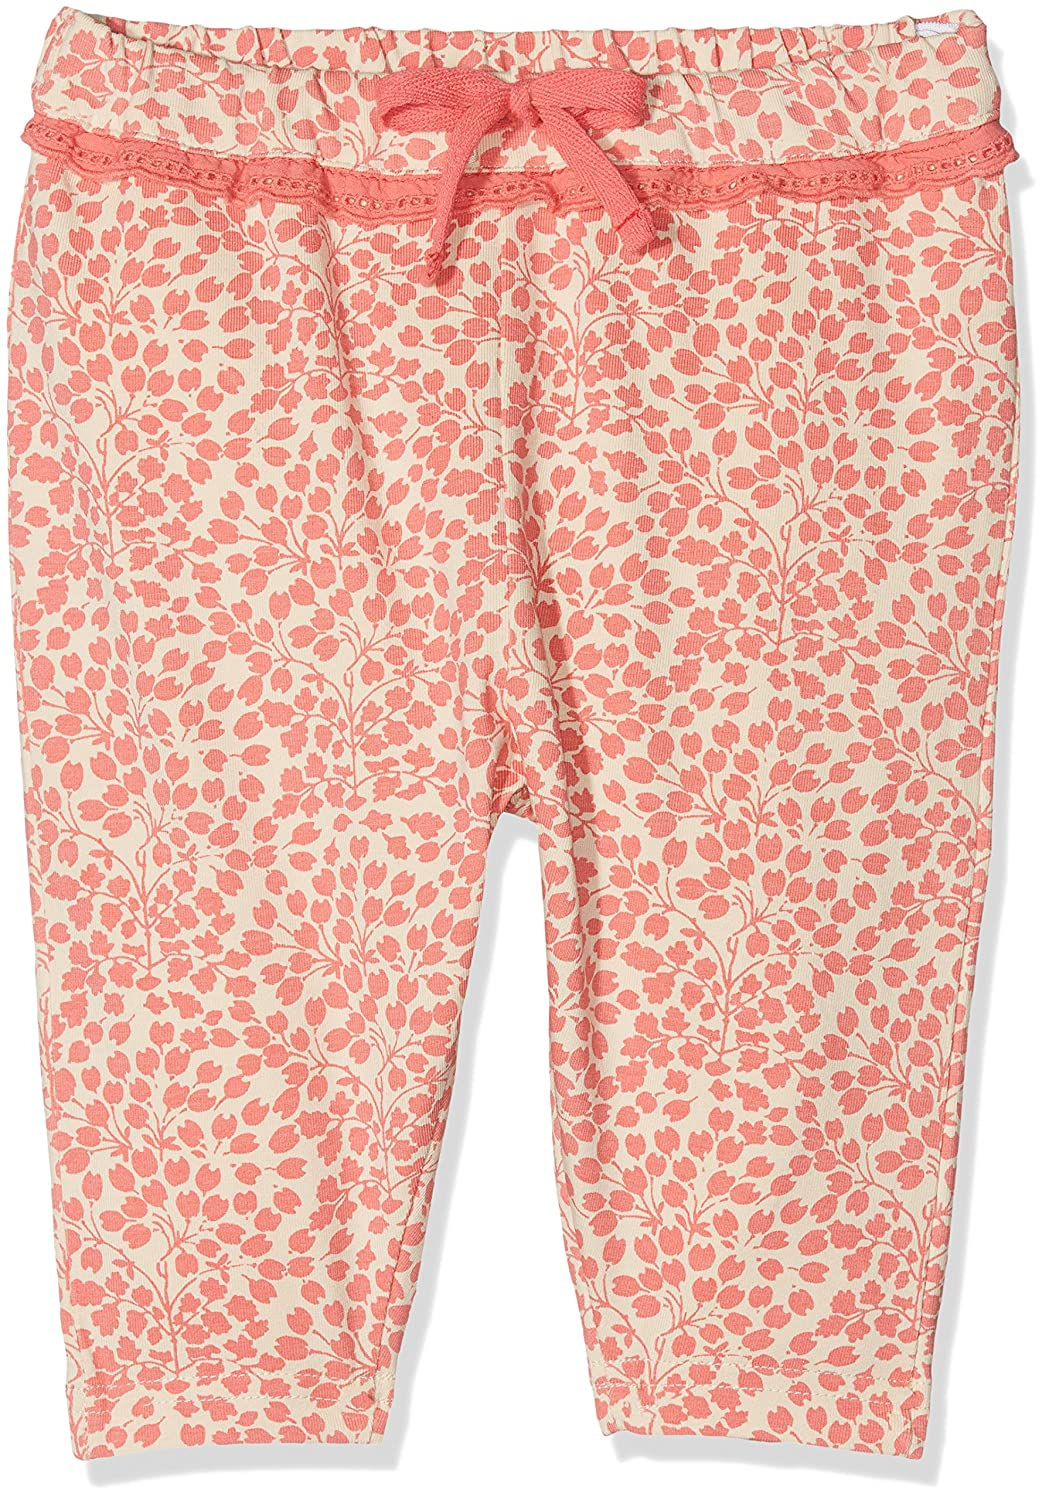 Noa Noa Baby Girls' Trousers,Long